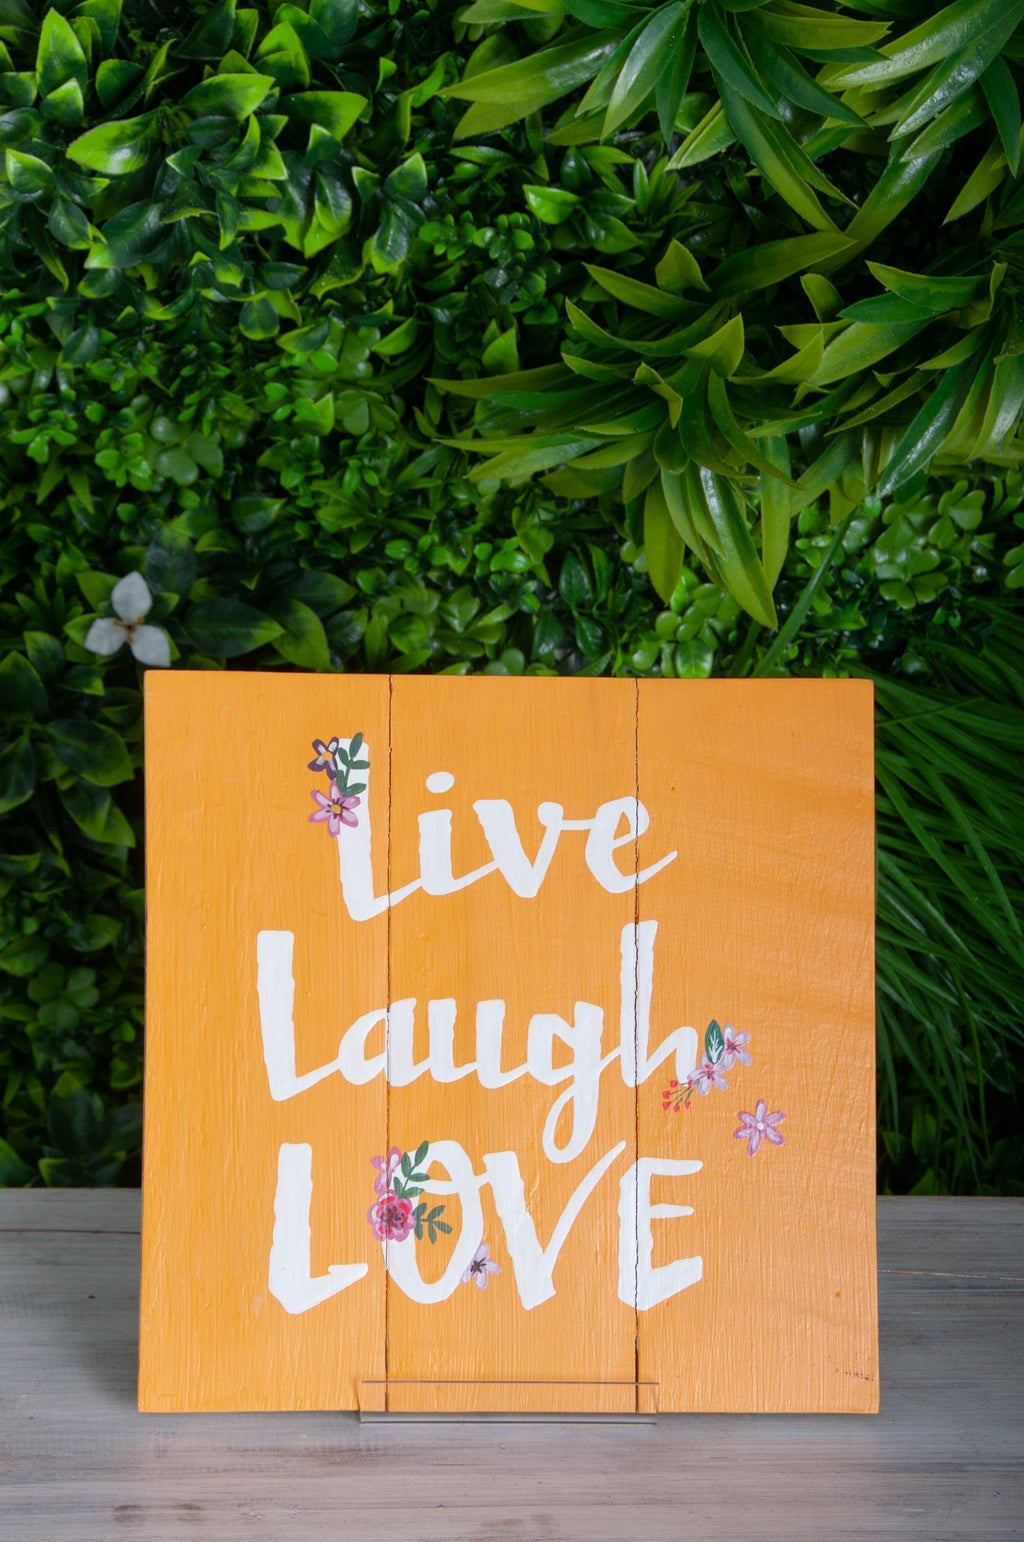 VVLH159 - SIGN BOARDS 30x30cm - LIVE LAUGH LOVE